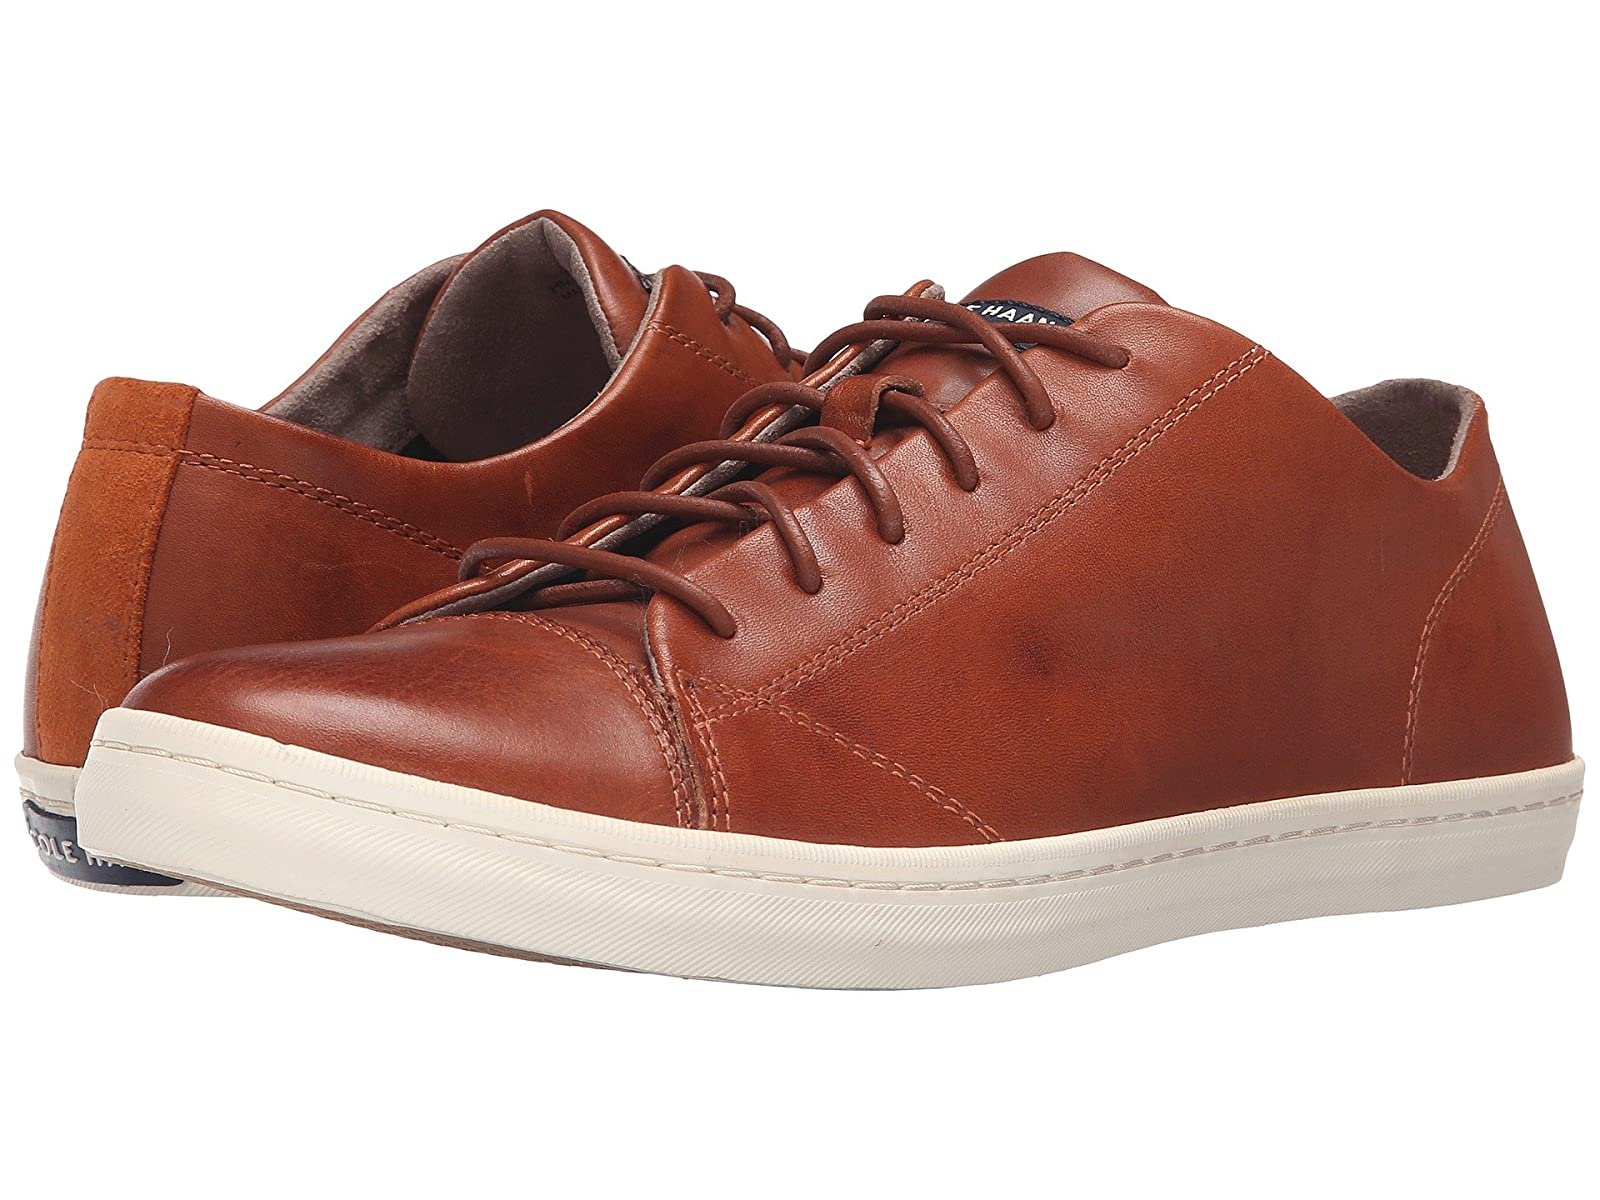 Cole Haan Trafton Cap Sport OxfordCheap and distinctive eye-catching shoes